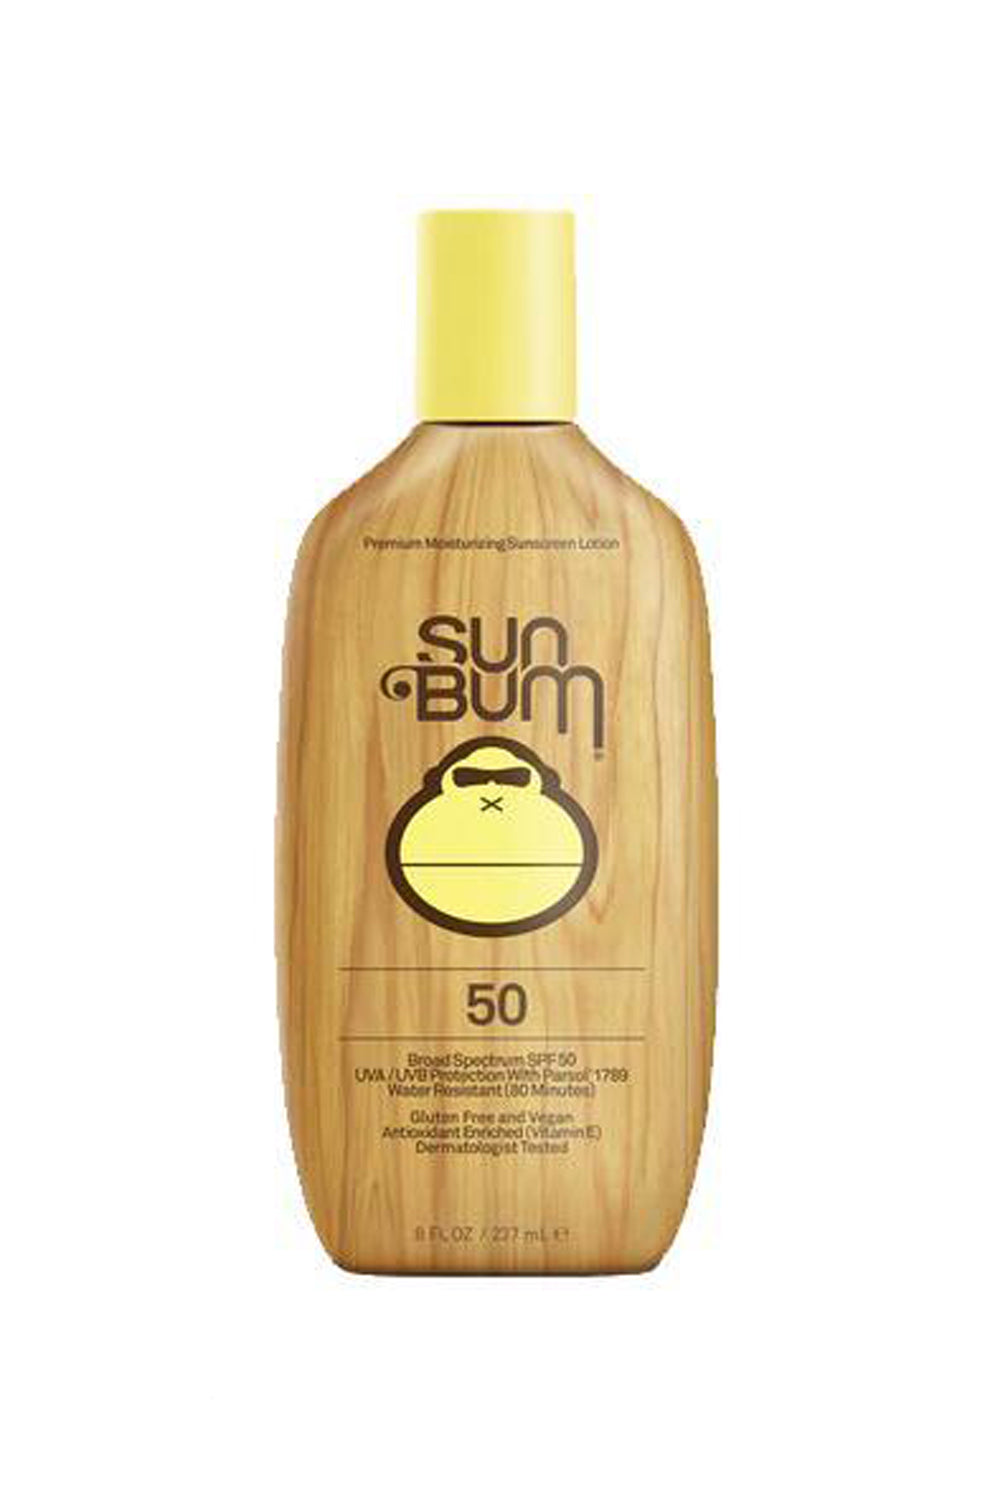 Sun Bum - Original Lotion SPF 50 Sunscreen 237ml